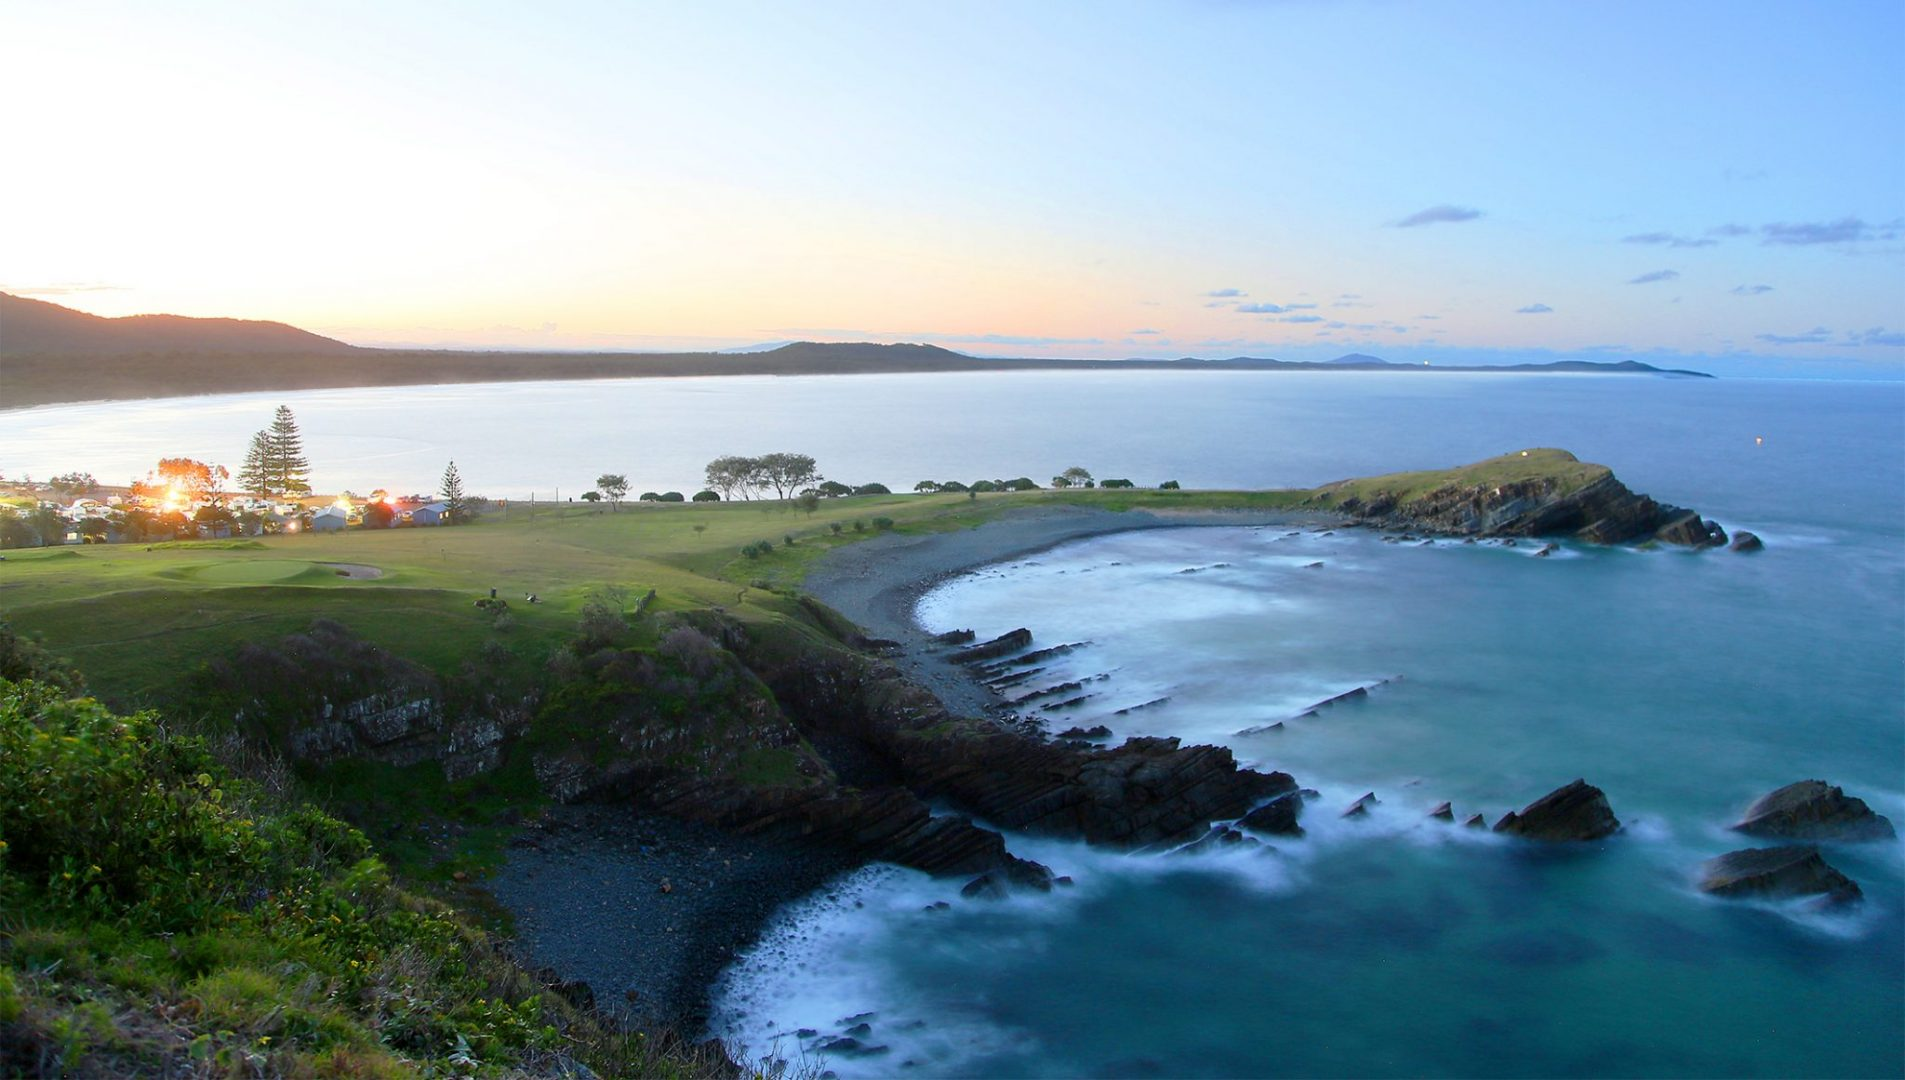 A family holiday in Crescent Head on the Macleay Valley Coast